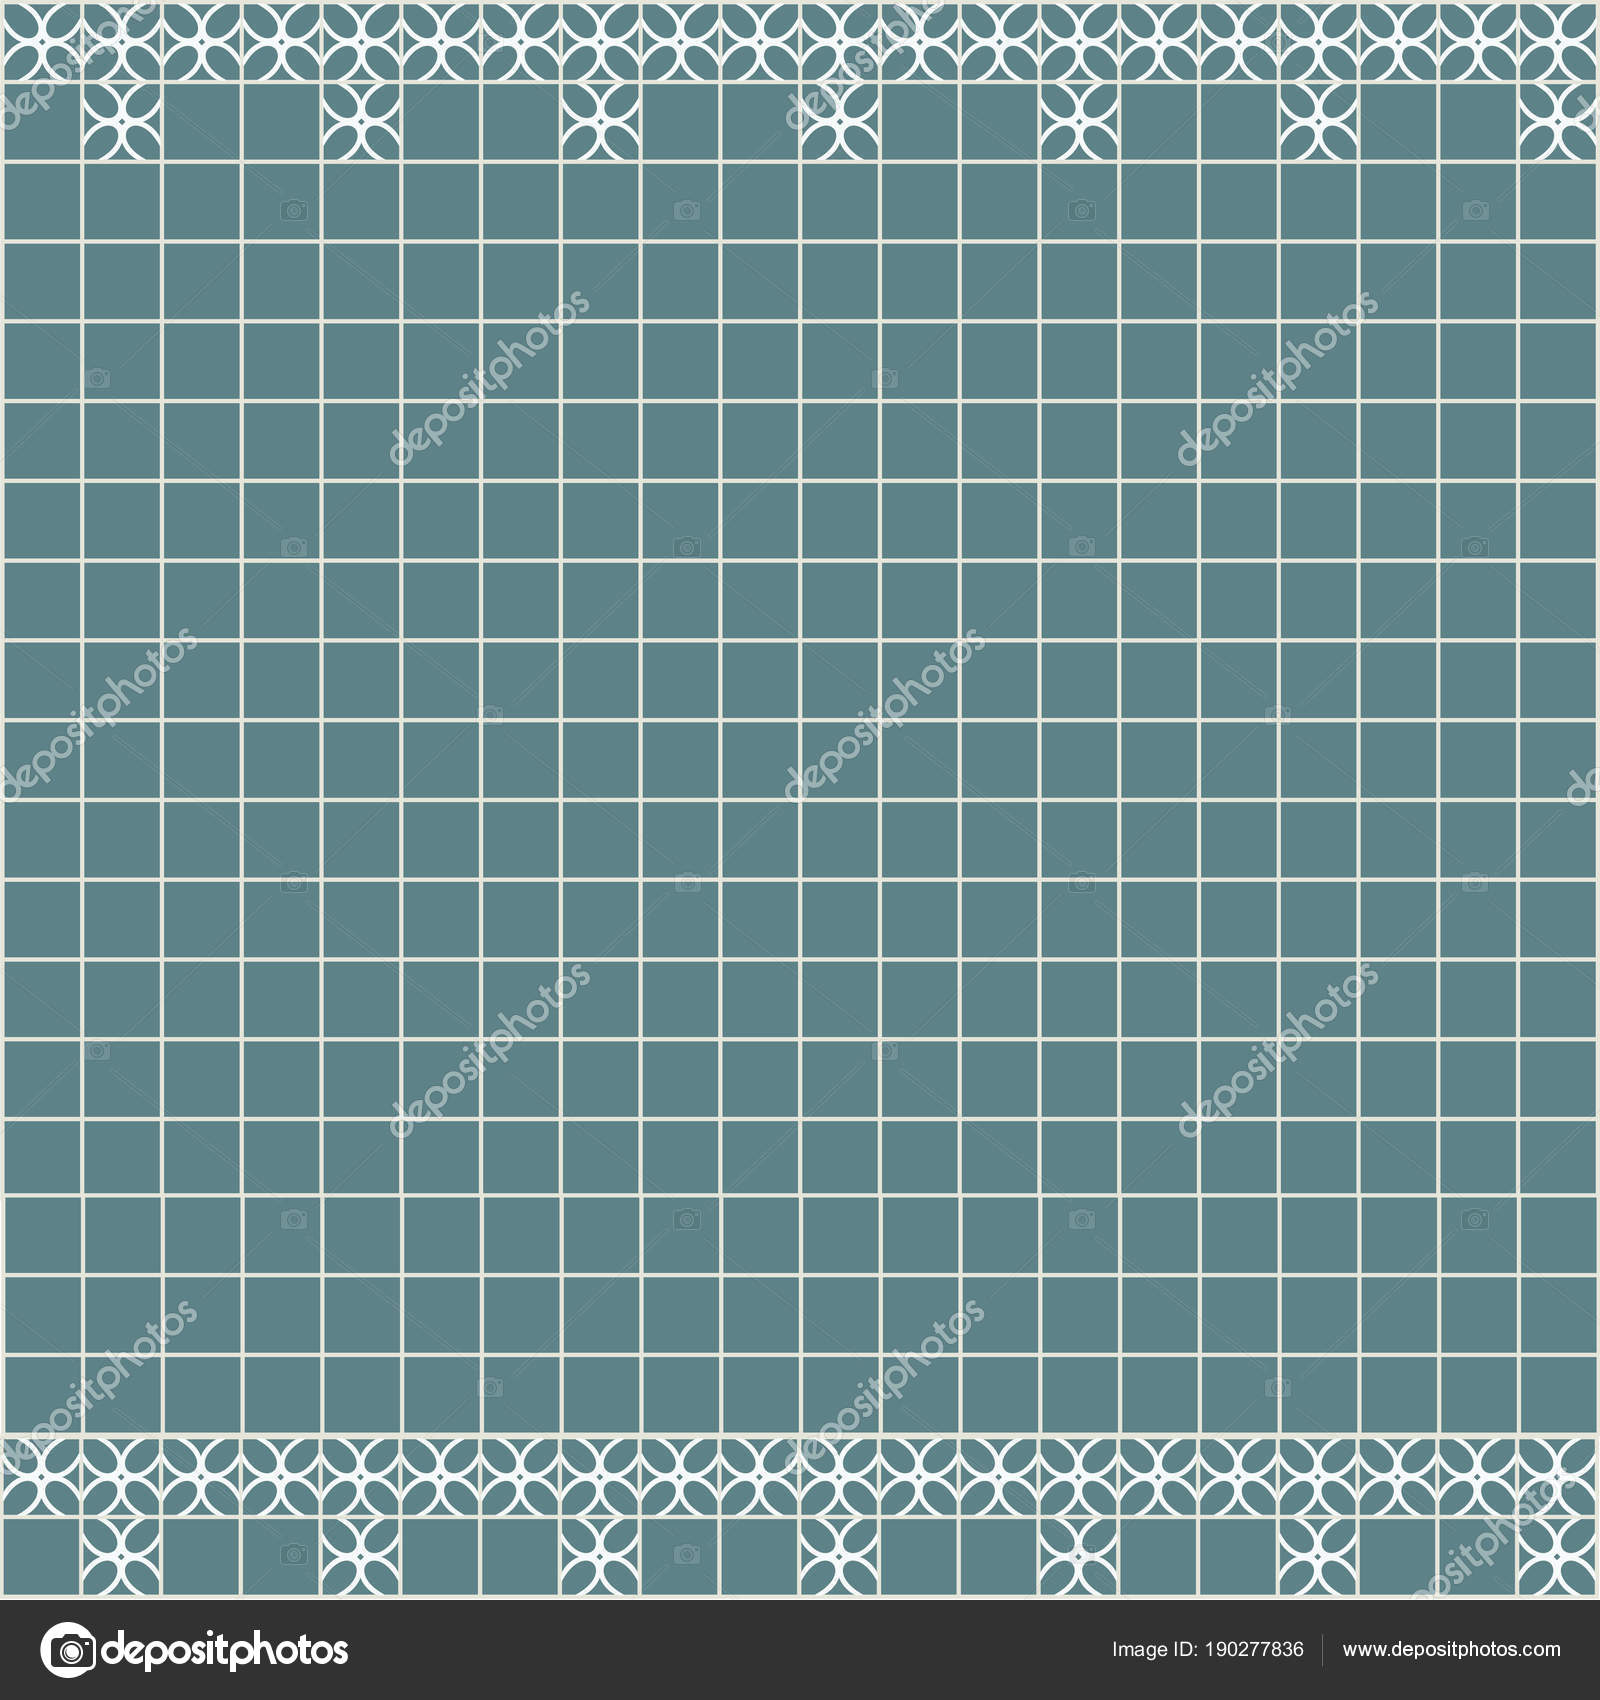 Dekoration Petrol Tile Decoration Steal Teal Square Tiles Decor Interior Design